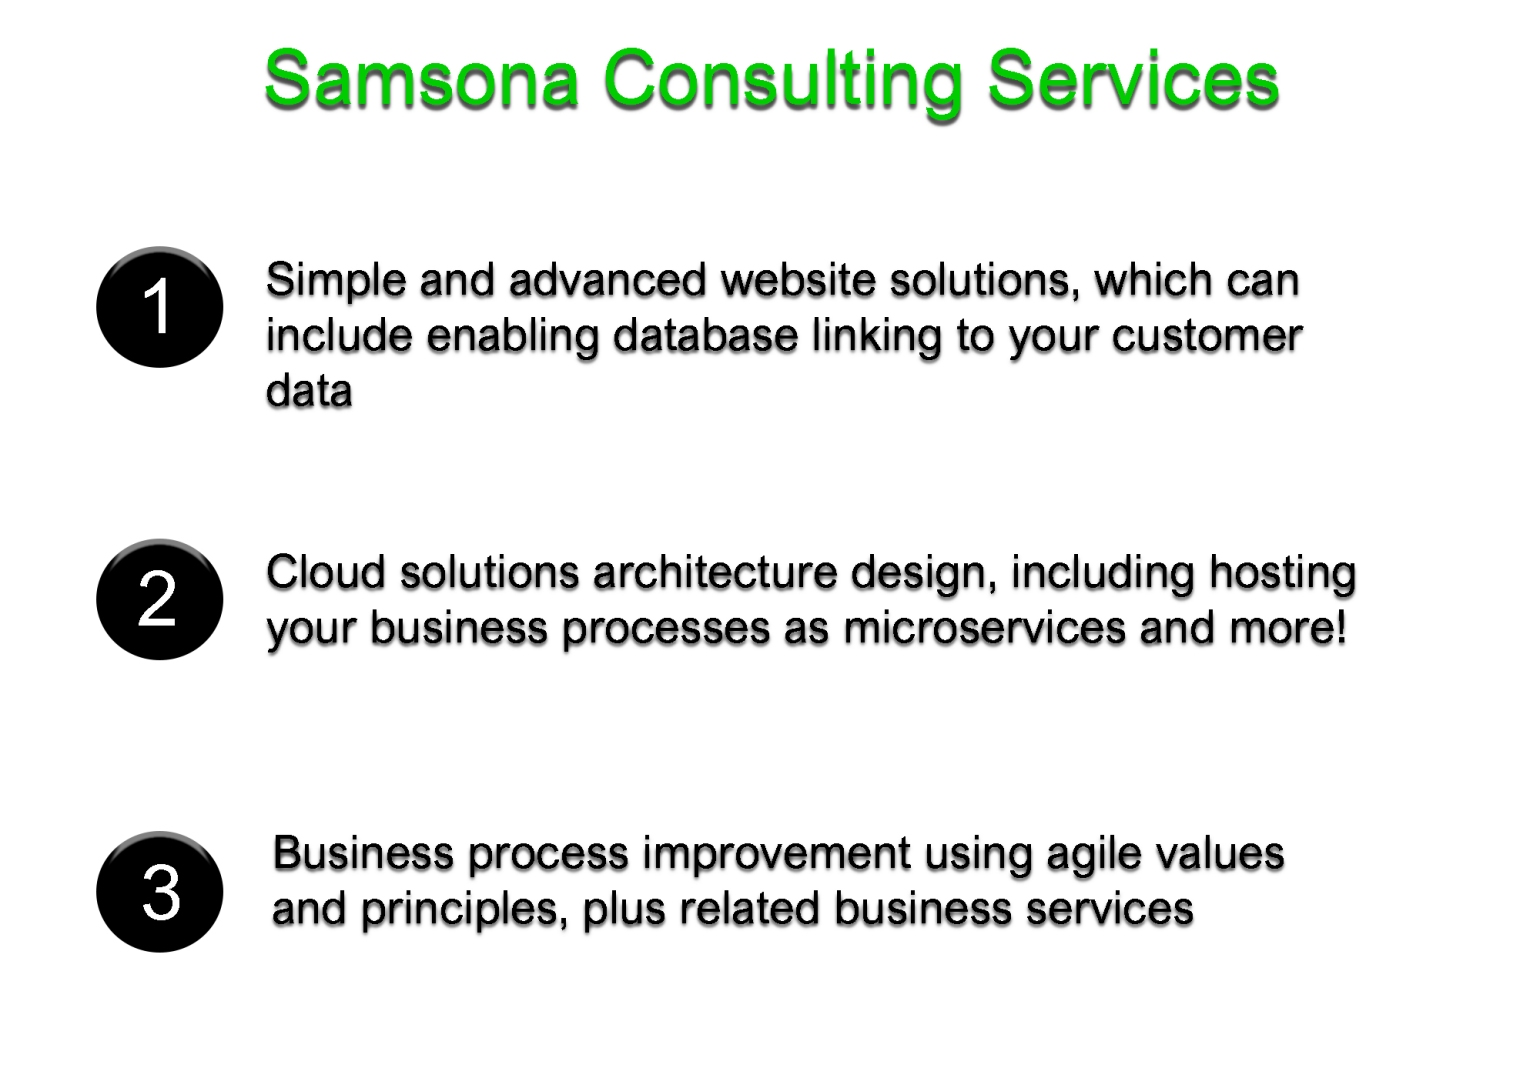 Samsona Consulting Services